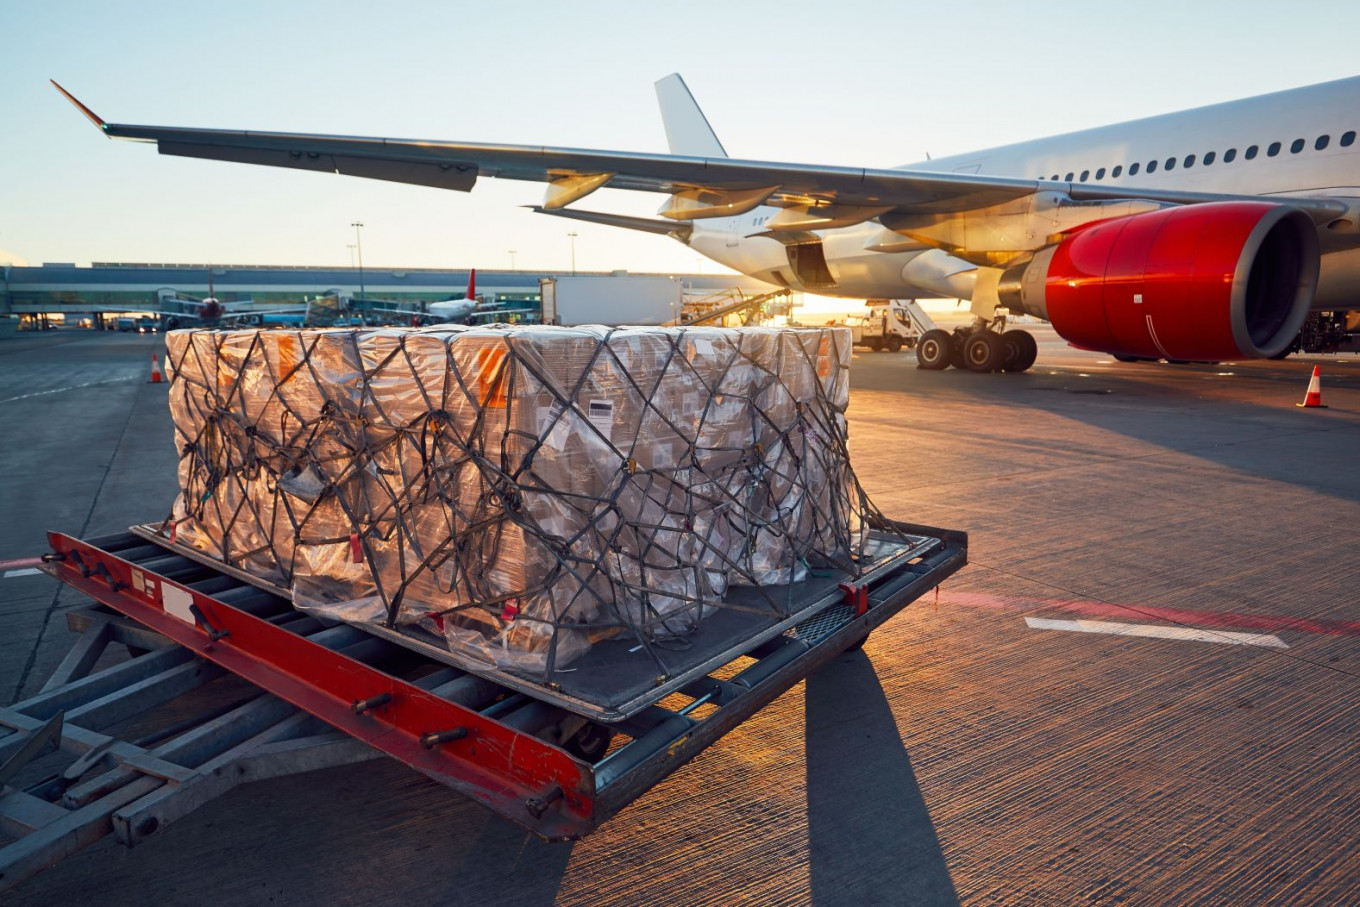 Air cargo industry not yet ready for COVID-19 vaccine distribution: Survey